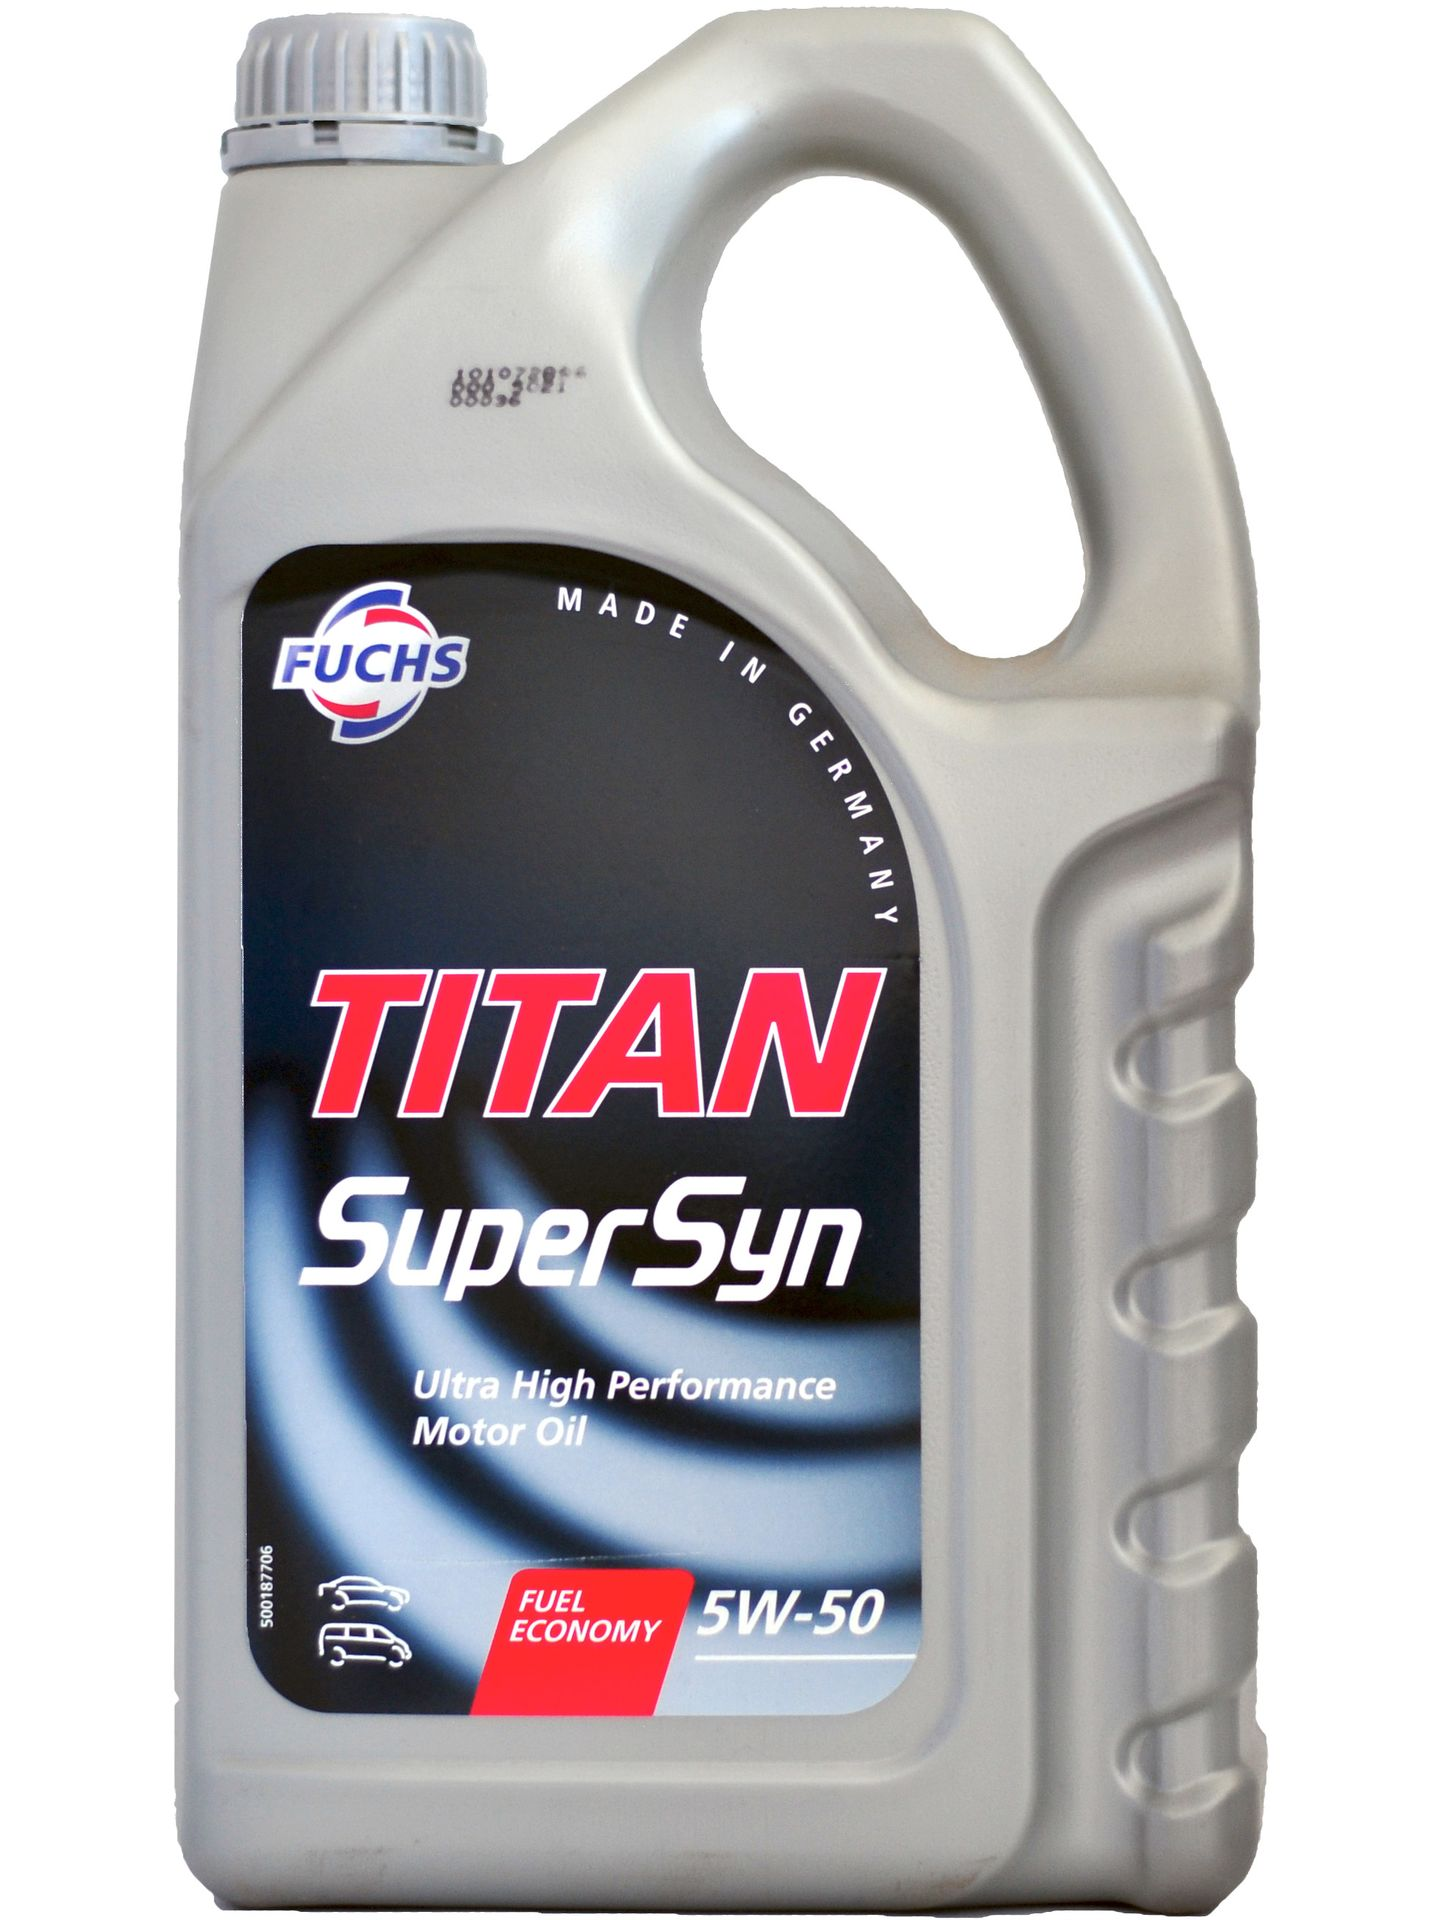 TITAN SUPERSYN SAE 5W-50